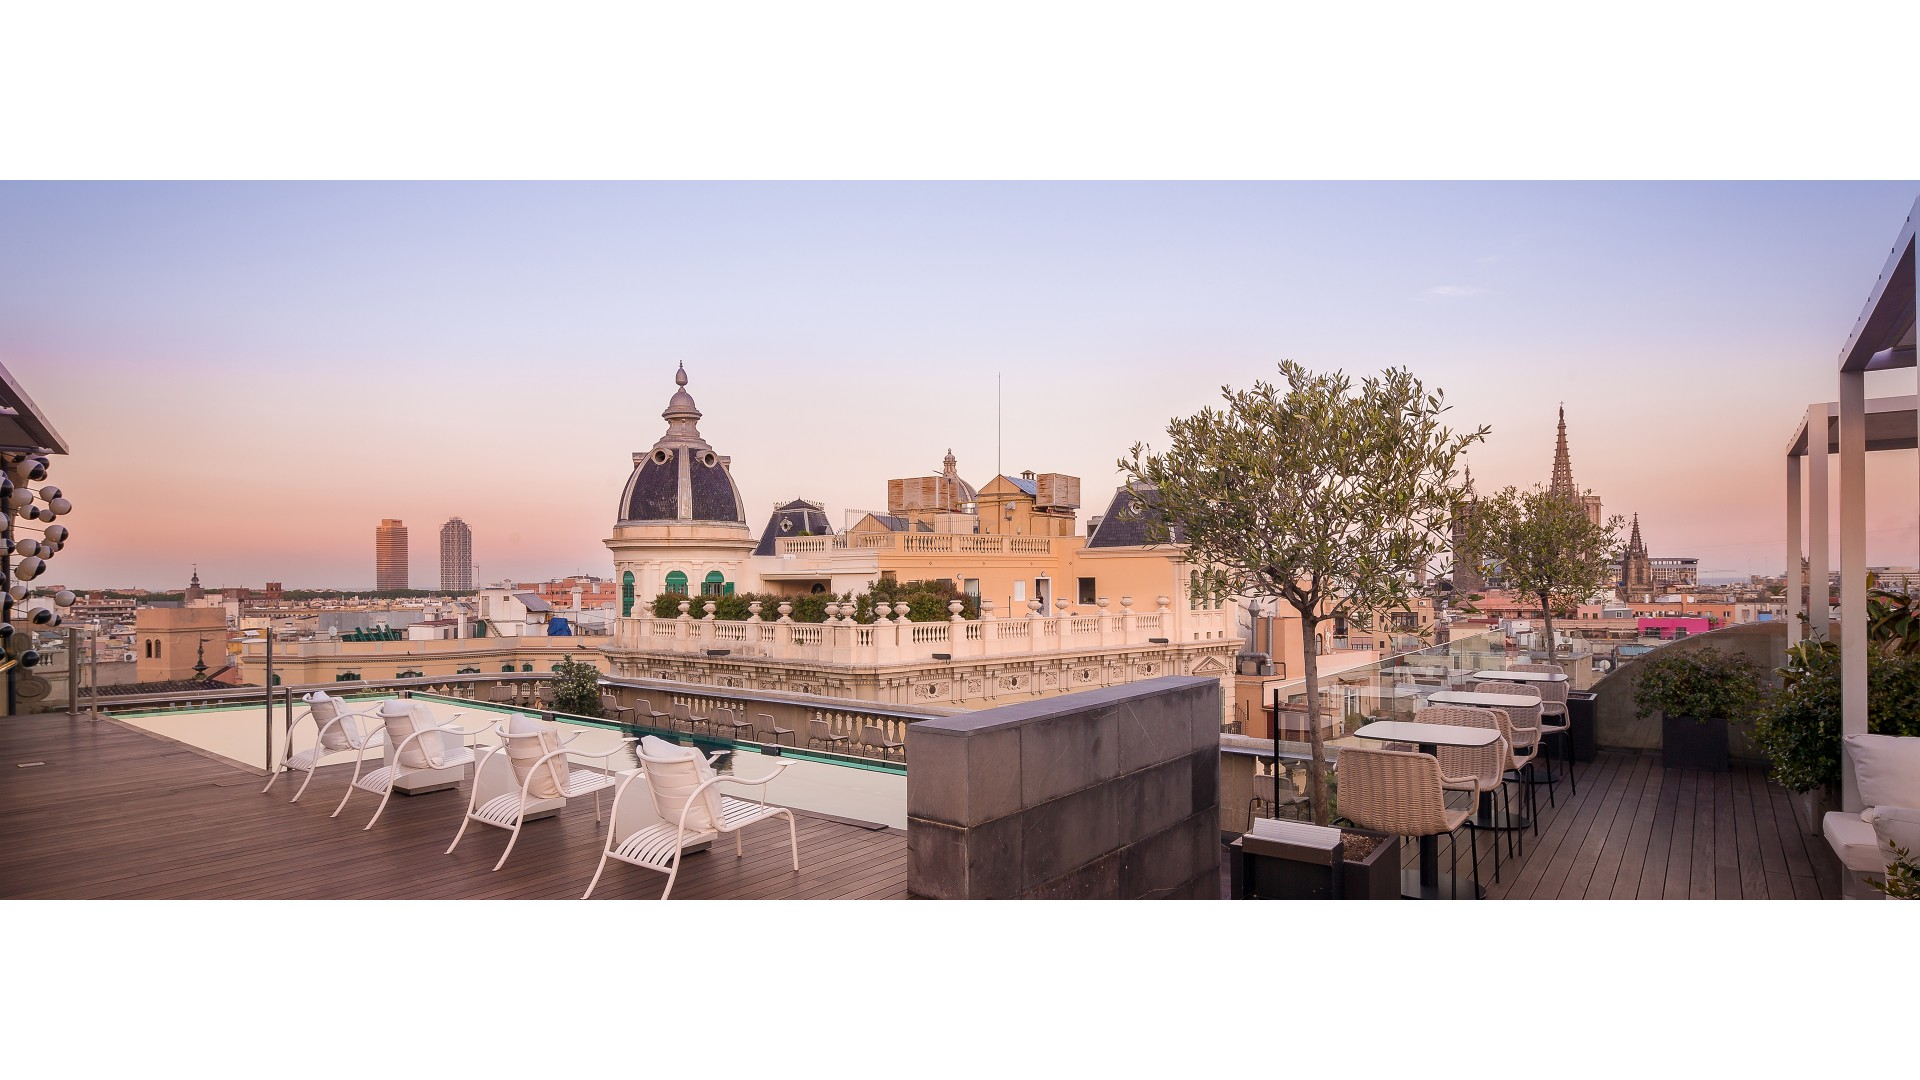 Hotel olah barcelona 2018 world 39 s best hotels for Ohla hotel barcelona